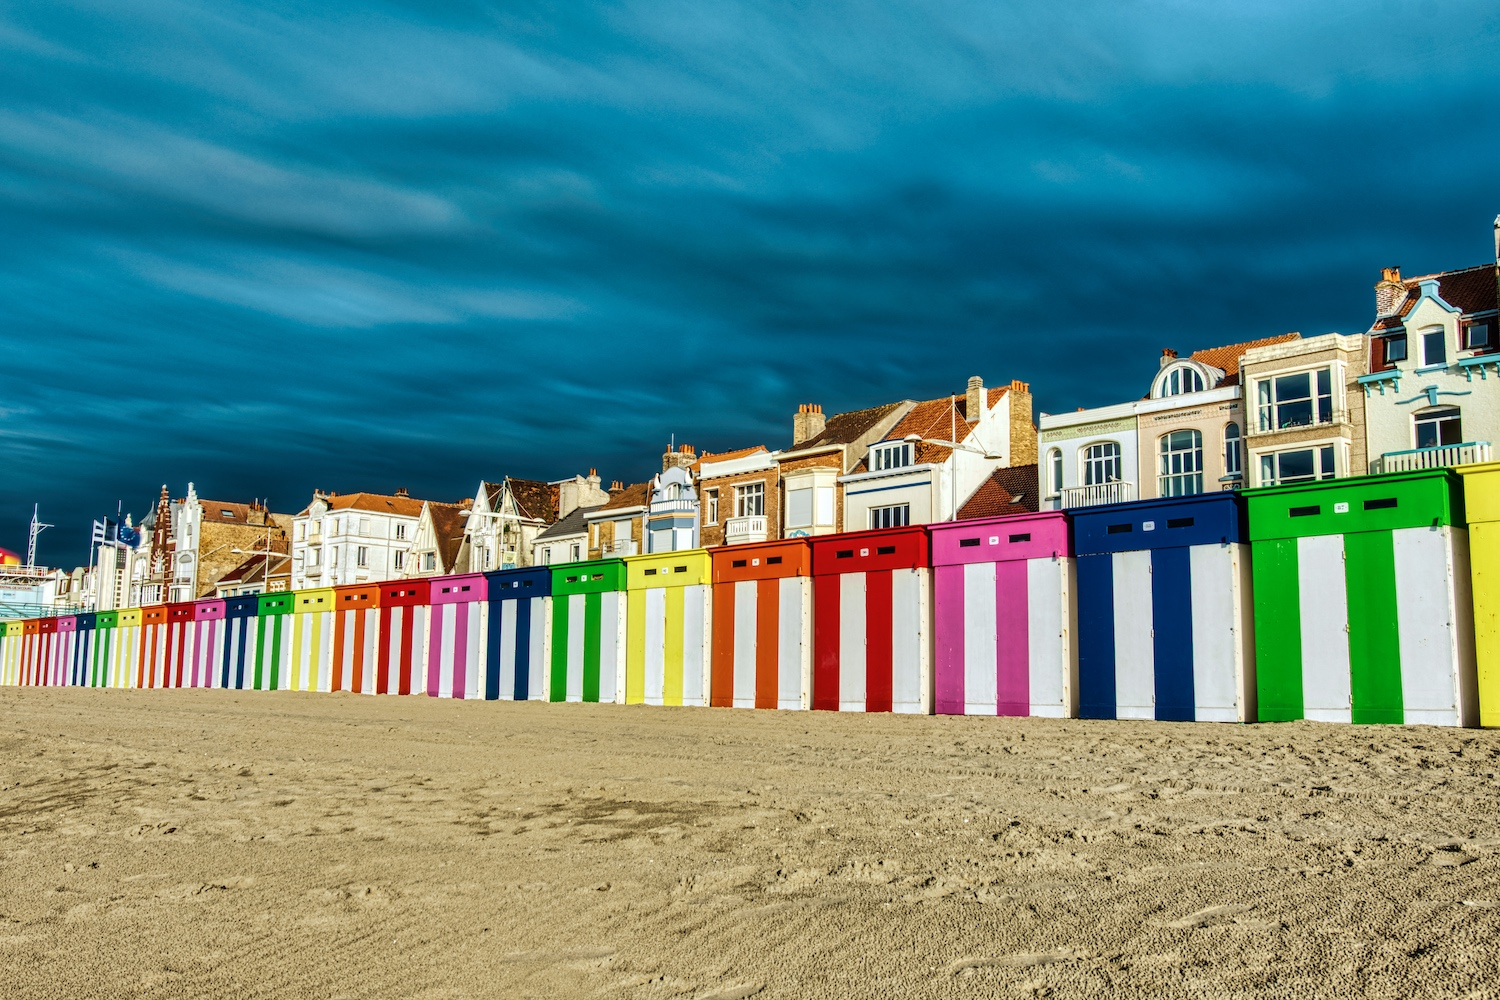 Bath cabins on the beach of Dunkerque in front of a threatening rain front